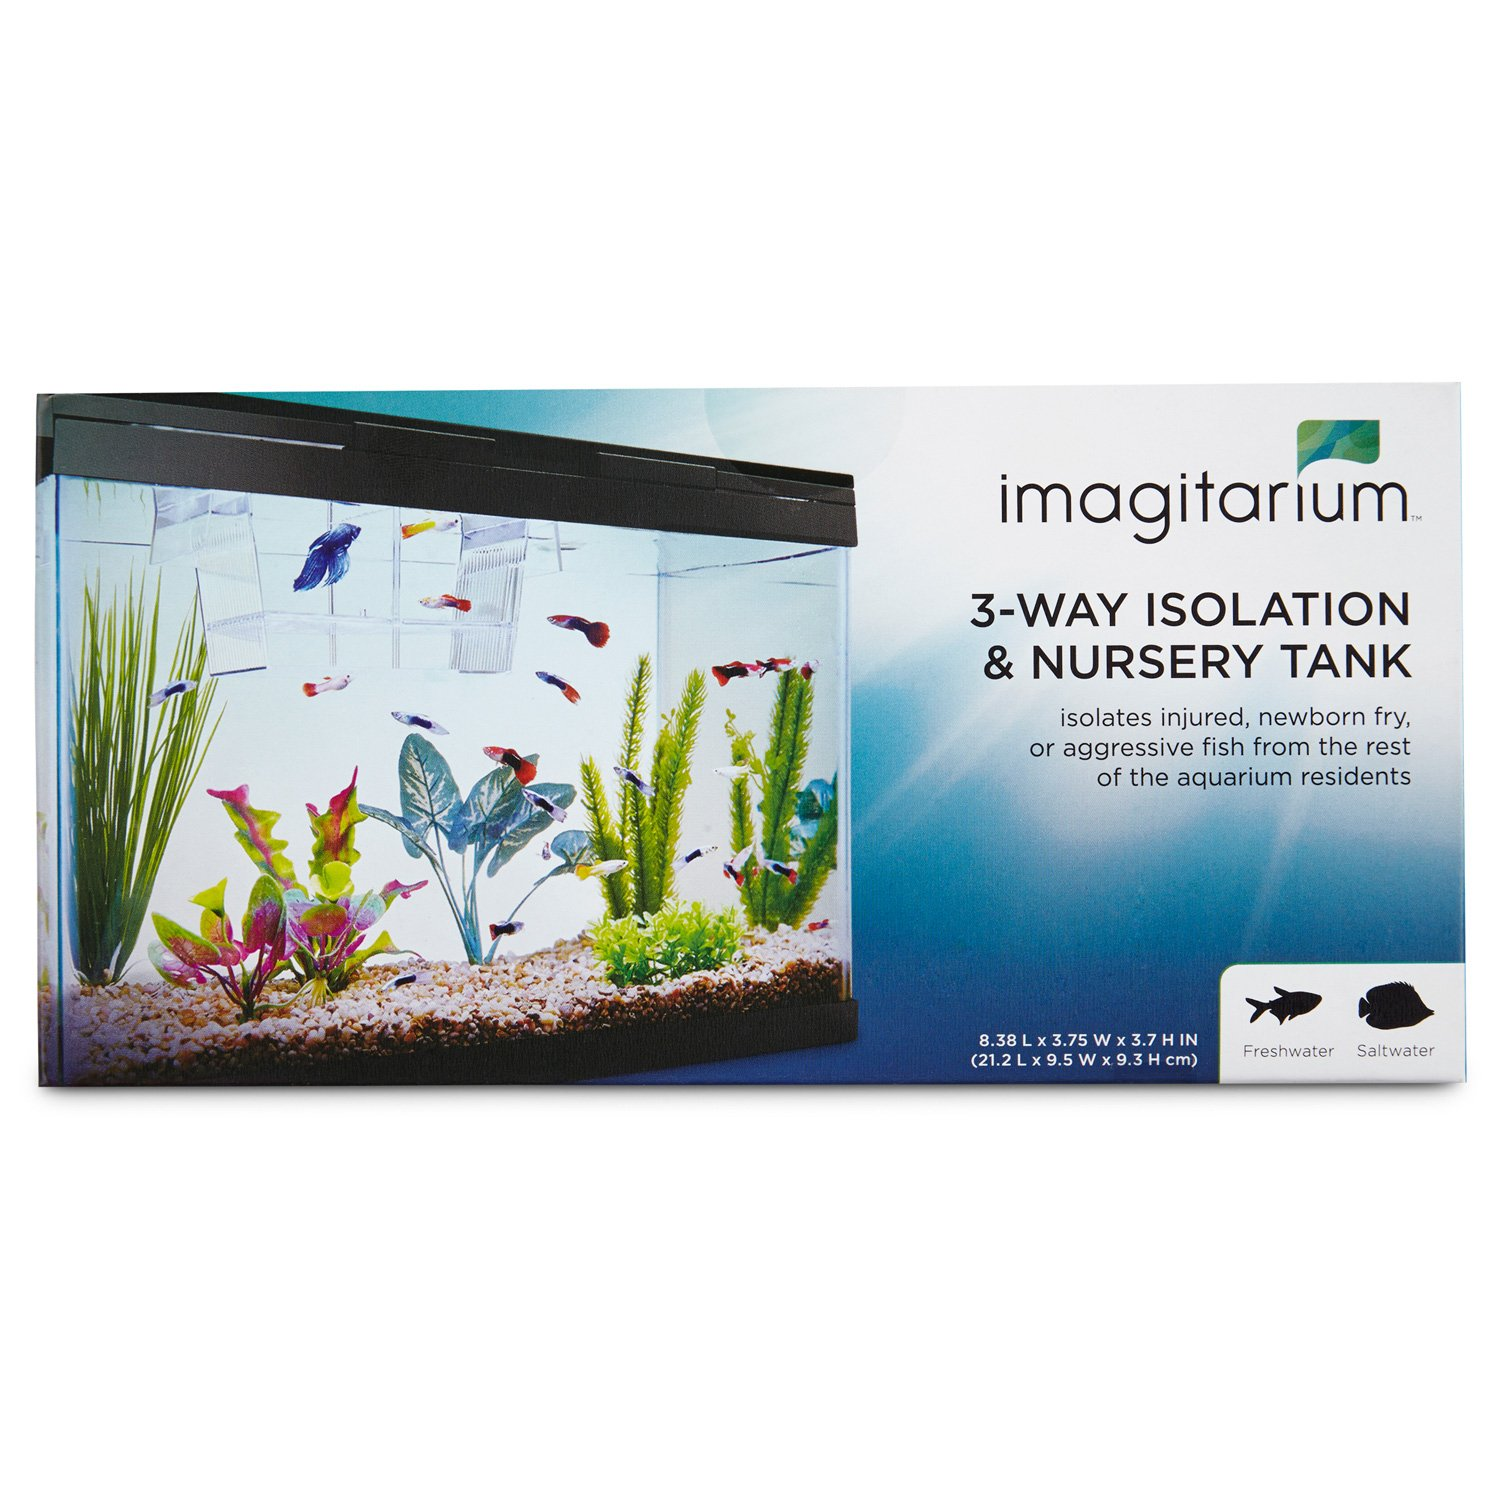 Imagitarium Isolation & Breeder Fish Tank | Petco